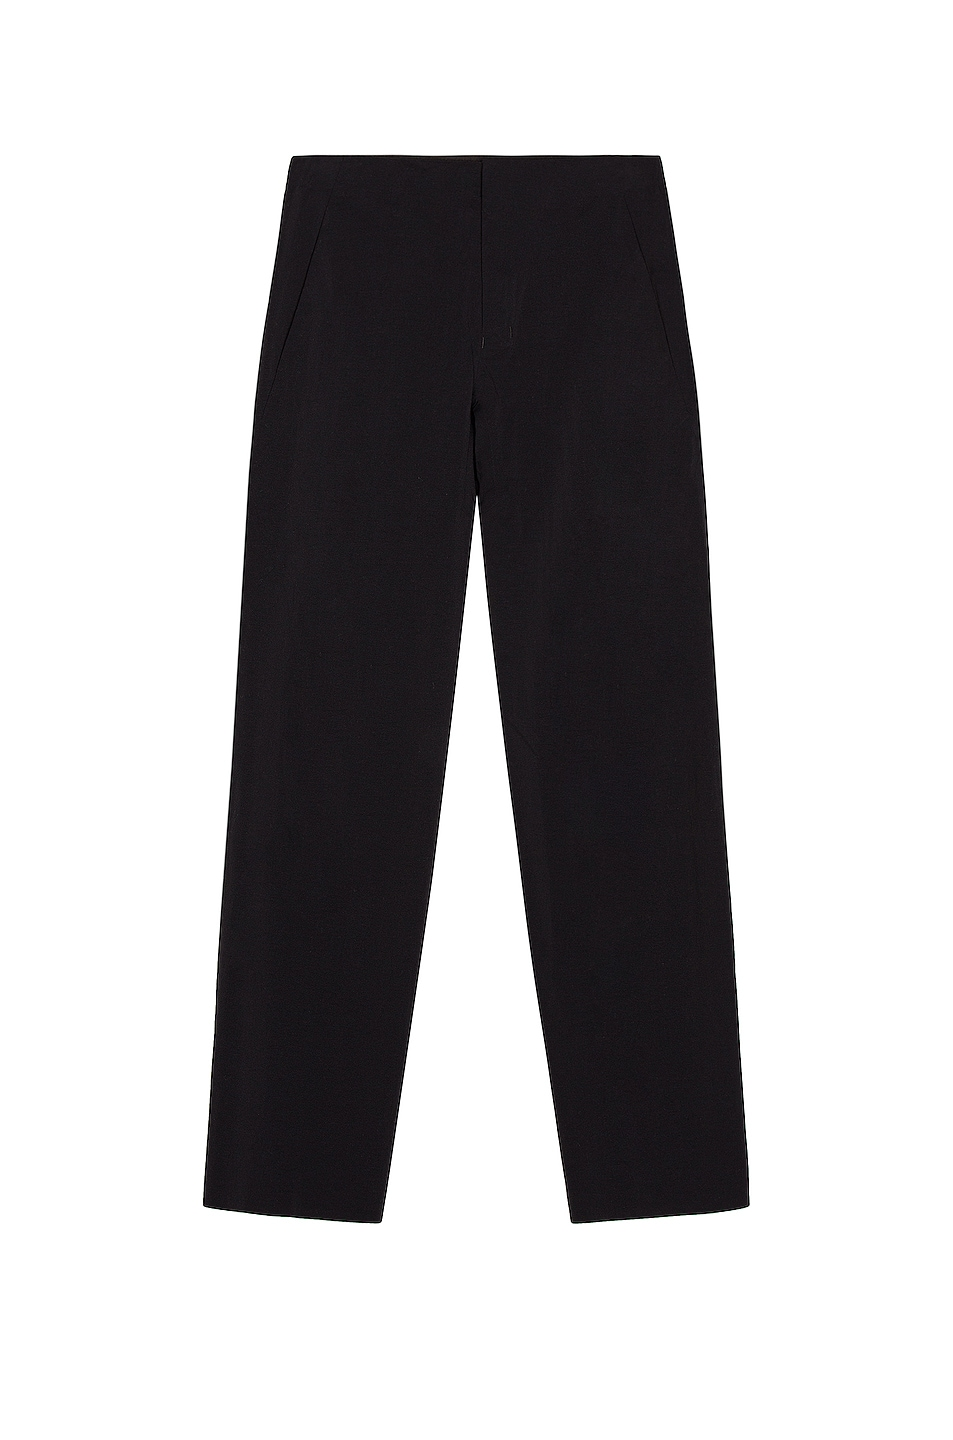 Image 1 of Veilance Spere Pant in Black